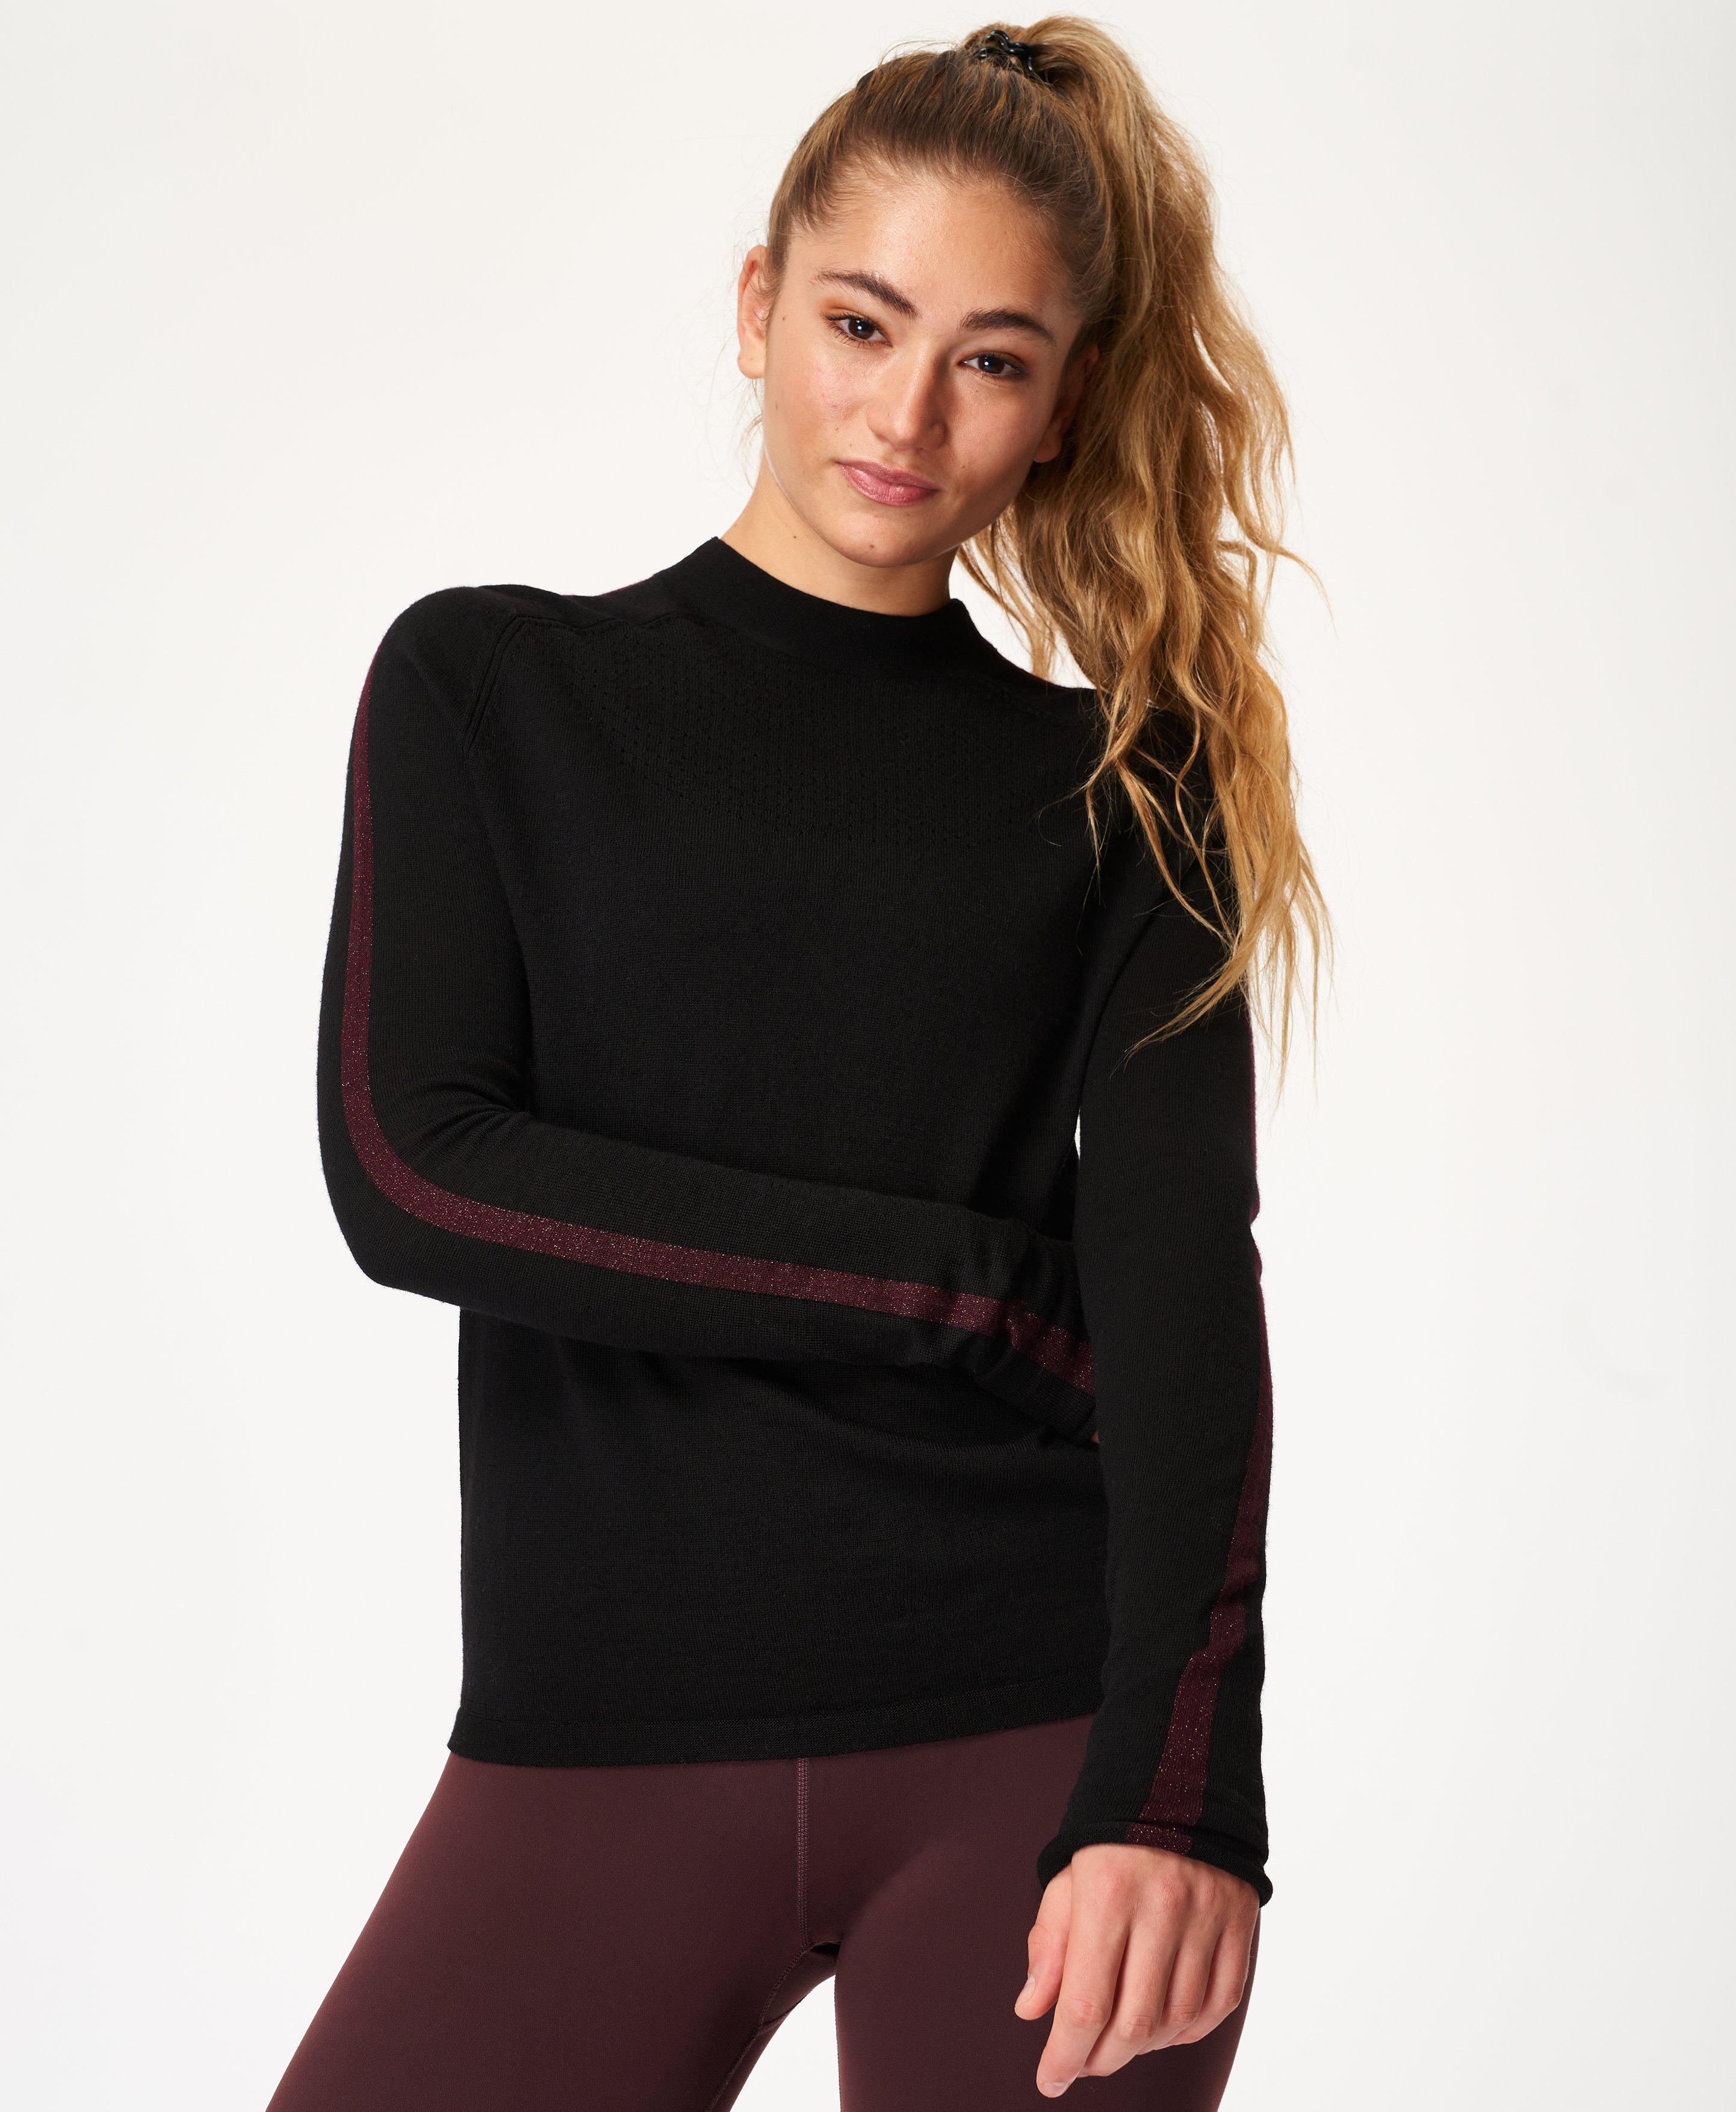 Meet the high performance knit you can run or relax in. Made from 100% merino wool, this temperature-regulating hero fabric keeps you cool when youre warm and warm when youre cold. In a slim fit, this features a high neck, a contrast stripe and punched holes for breathability.